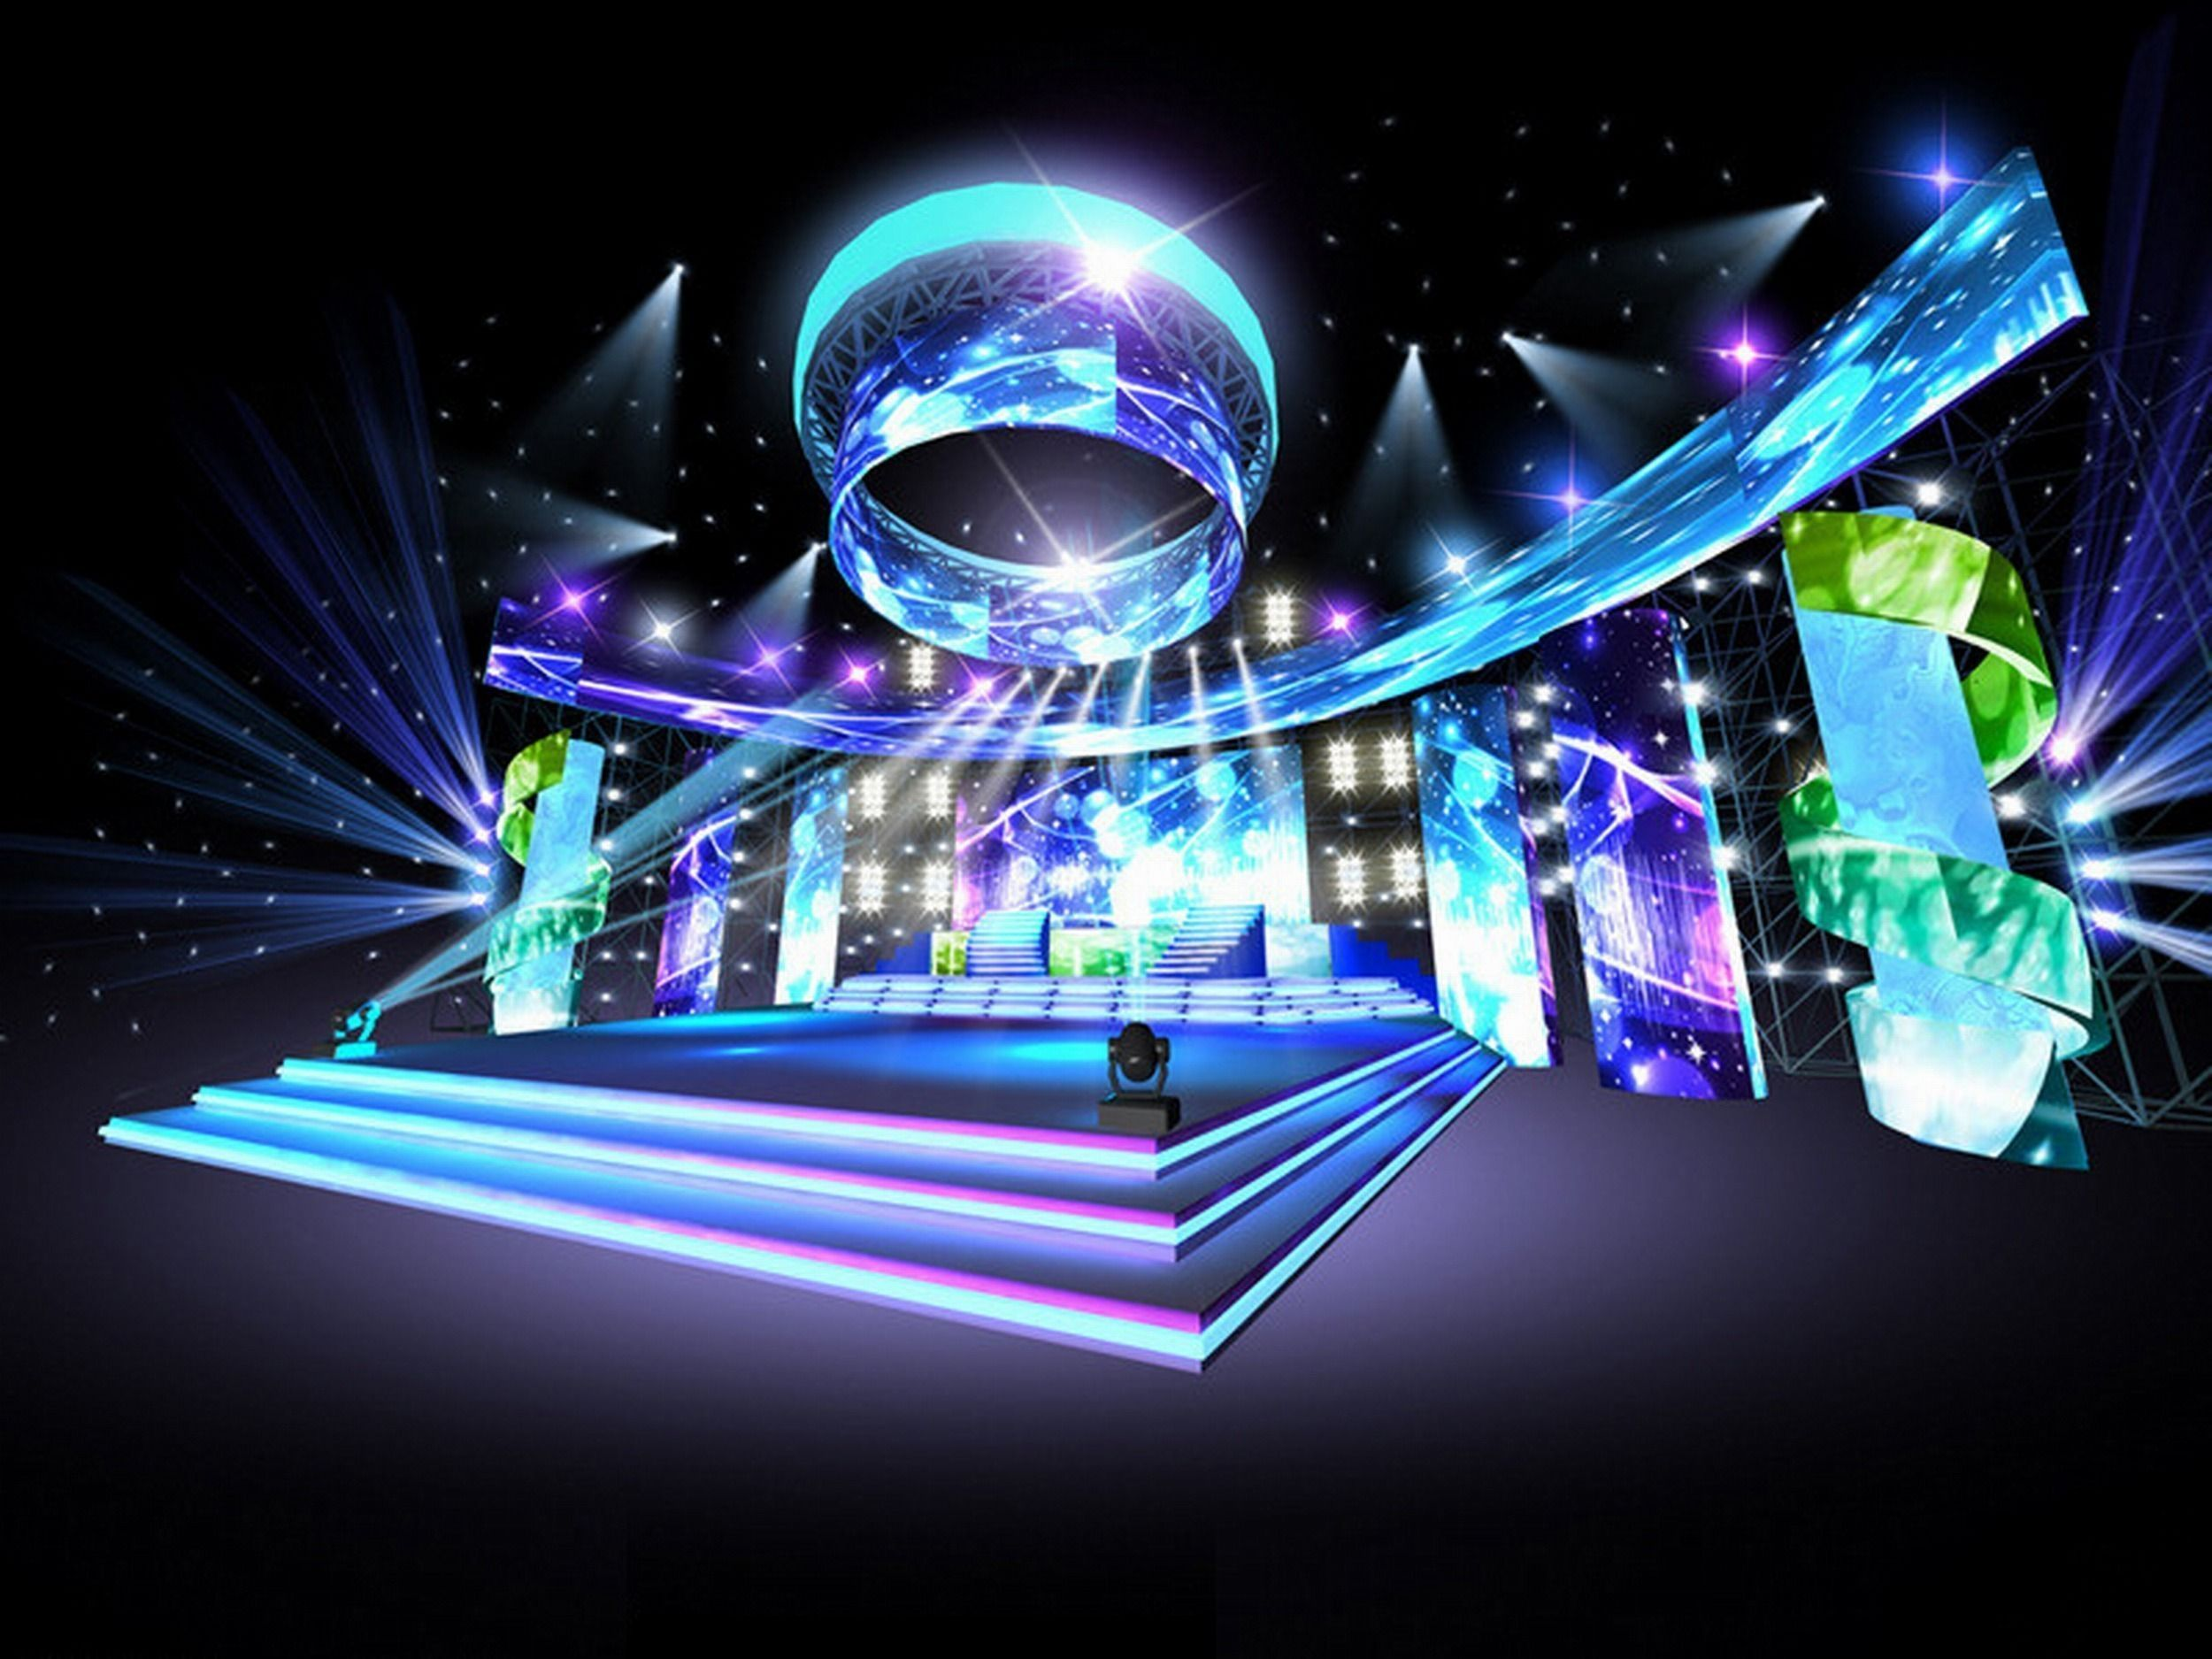 concert stage design 16 3d model max obj mtl